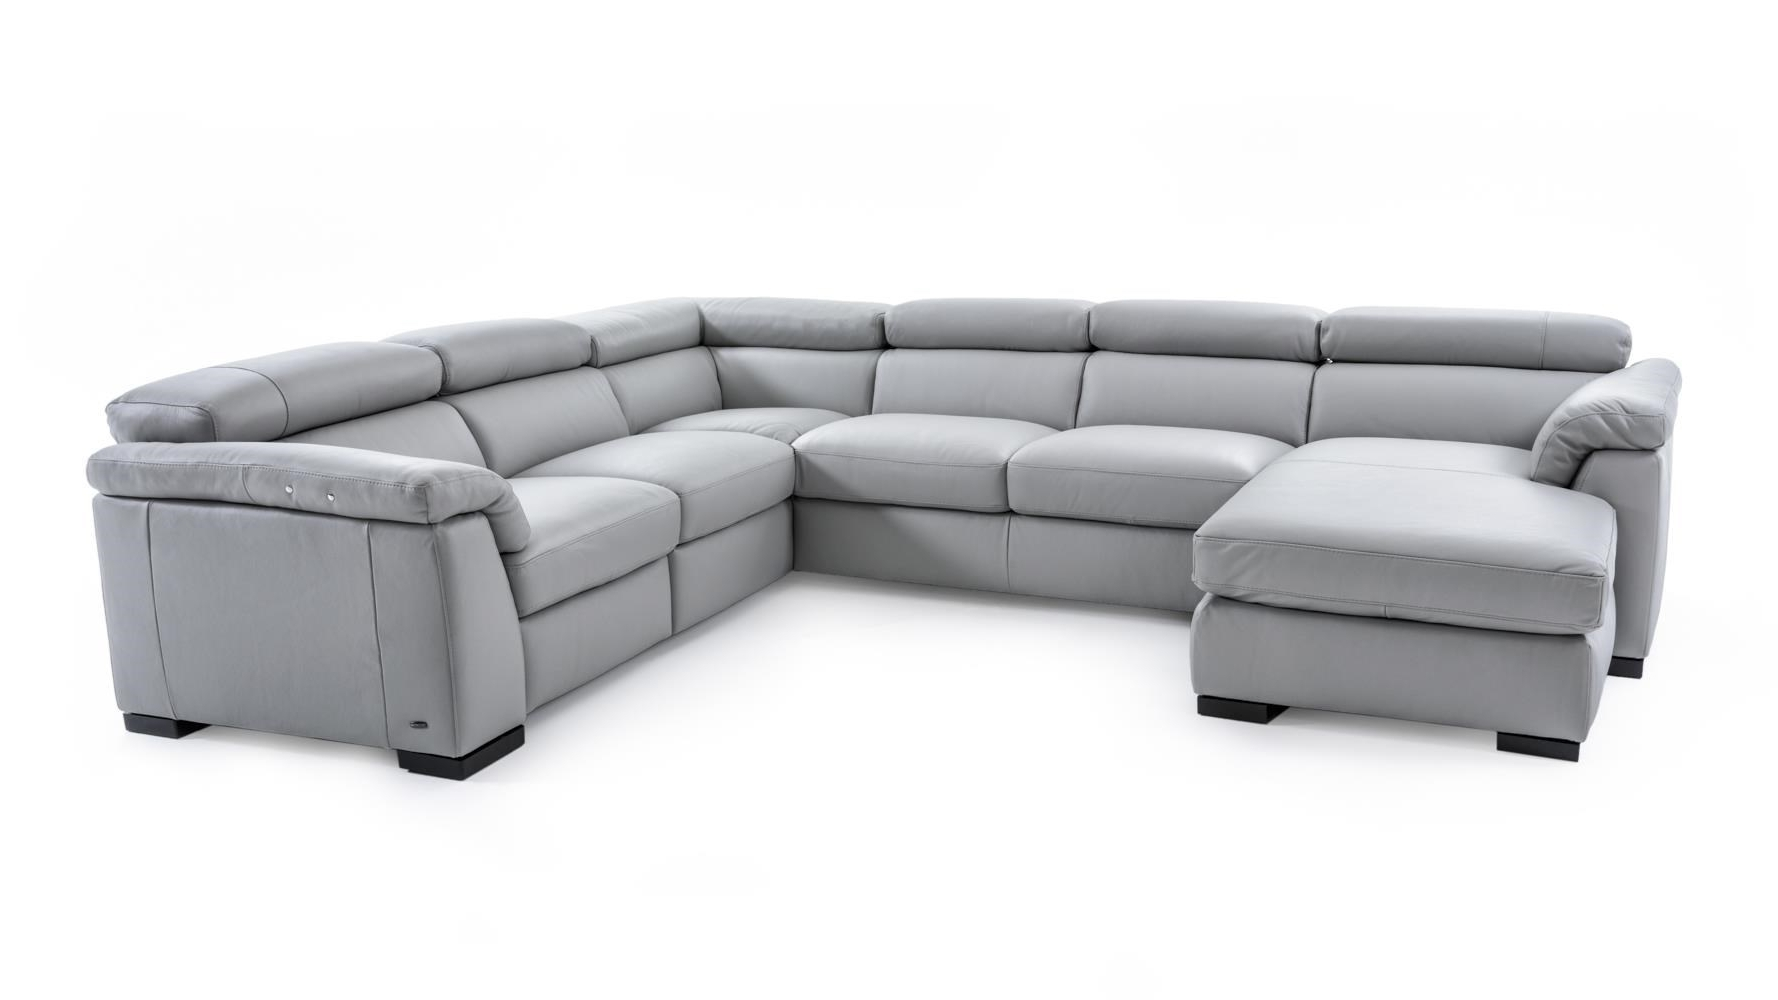 with sectionals office luxury for clubanfi perfect com sectional elegant of march natuzzi pictures ideas photos couch sofa